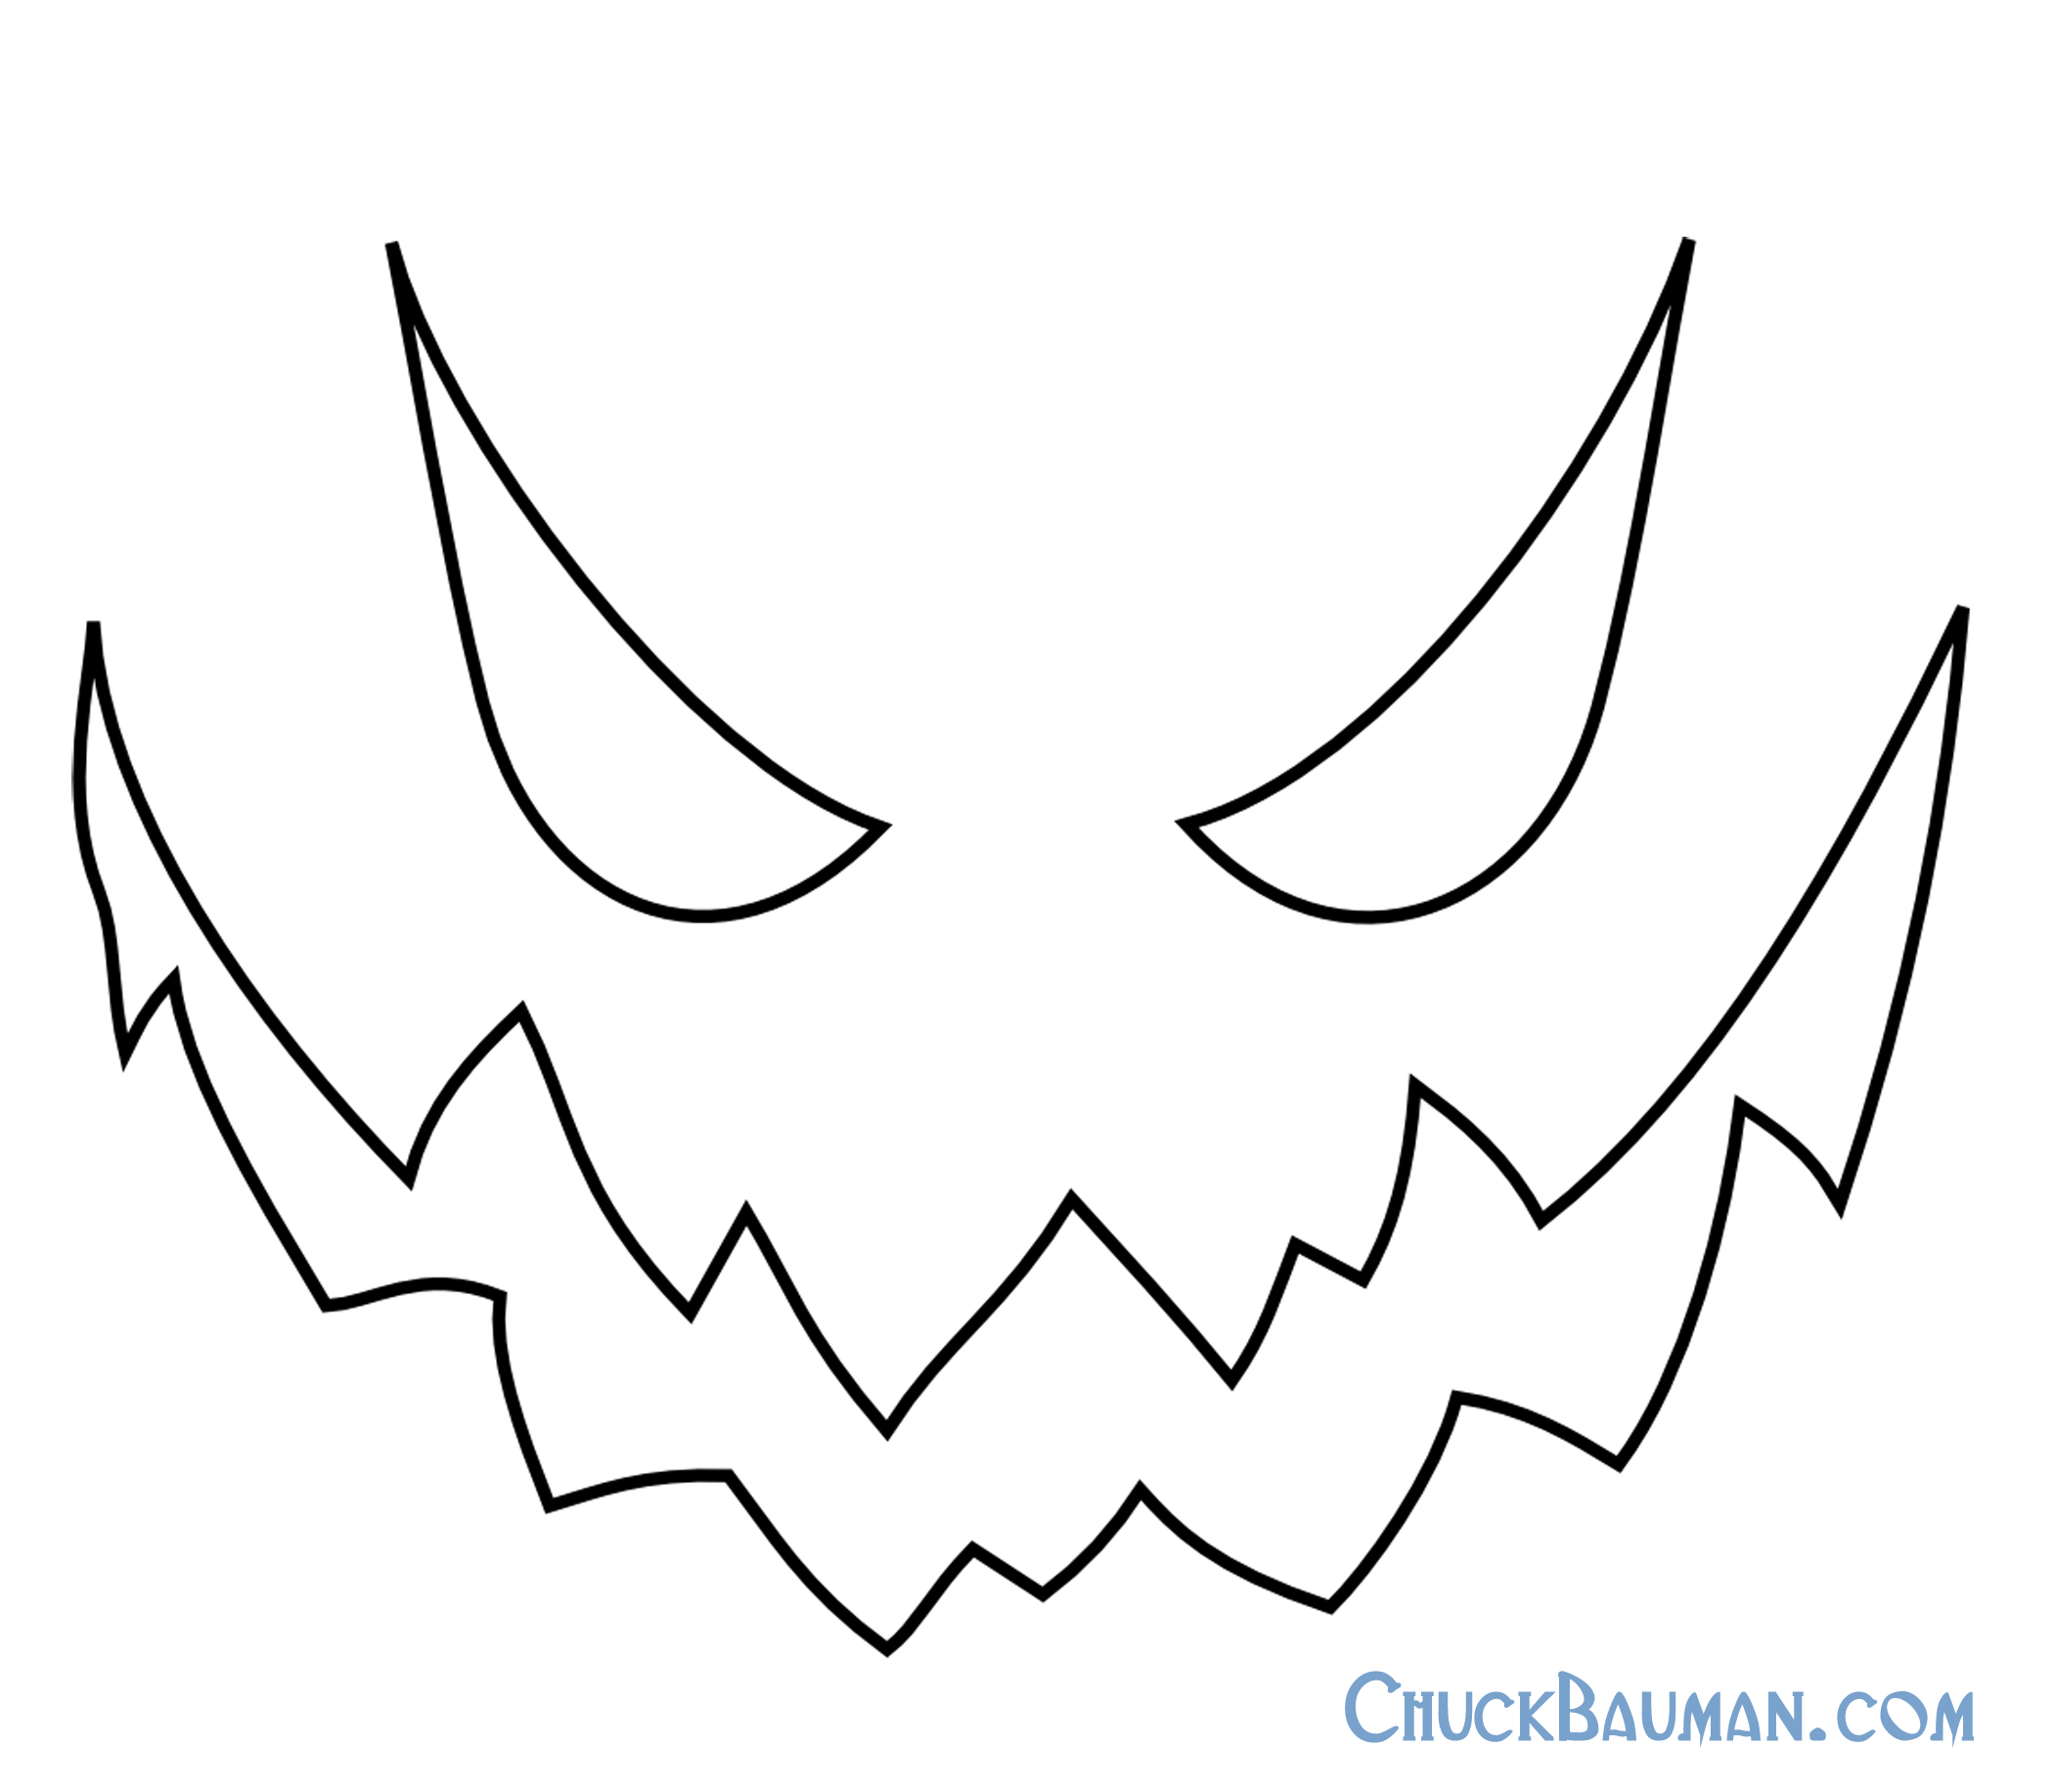 8 Best Images of Jack O Lantern Templates Printable ...